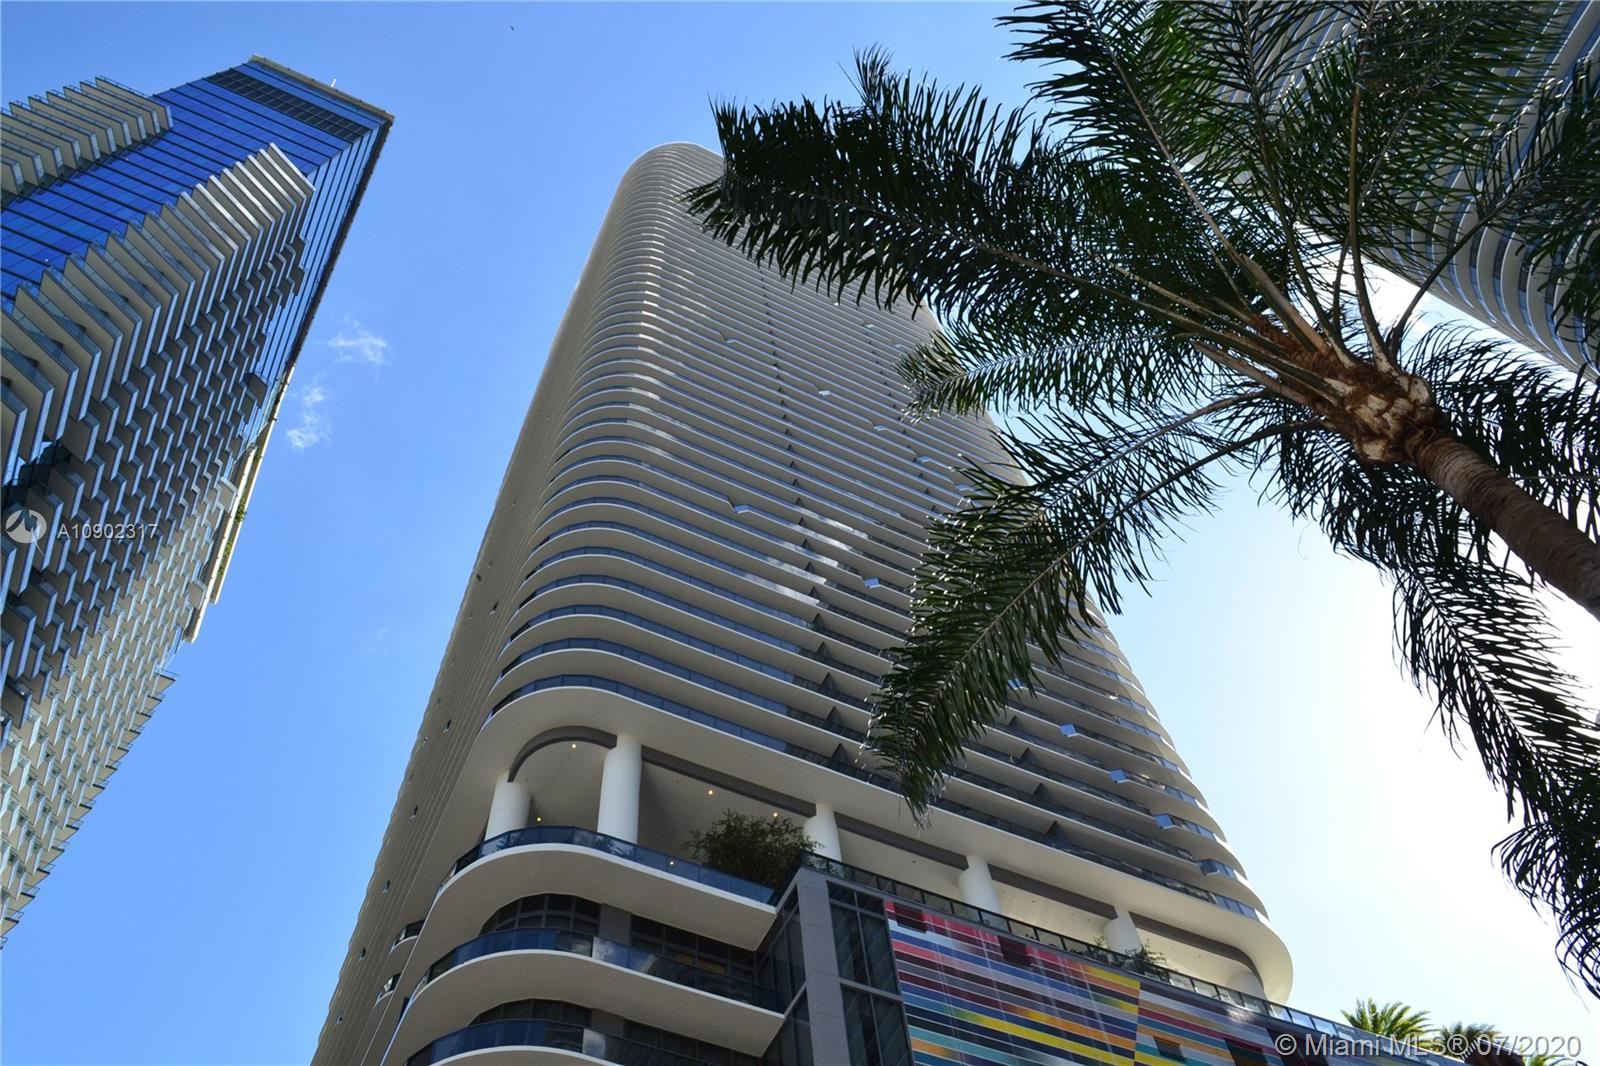 "Comfortable 1,753 SqFt, 3 BR/4 BA + DEN. SLS Lux is ideally located in the heart of Brickell , close to Mary Brickell Village and in front of Brickell City Center. Access your residence on a private elevator with biometrics technology, enjoy ample living areas with scenic Bay & City views from this prime corner unit and expansive wrap-around balcony. Features floor- to- ceiling windows, Italian Kitchen, California closets and top of the line appliances and ""smart"" wireless control pad. Miami's newest high-rise designed by Arquitectonica, and elegant interiors by Yabu Pushelberg